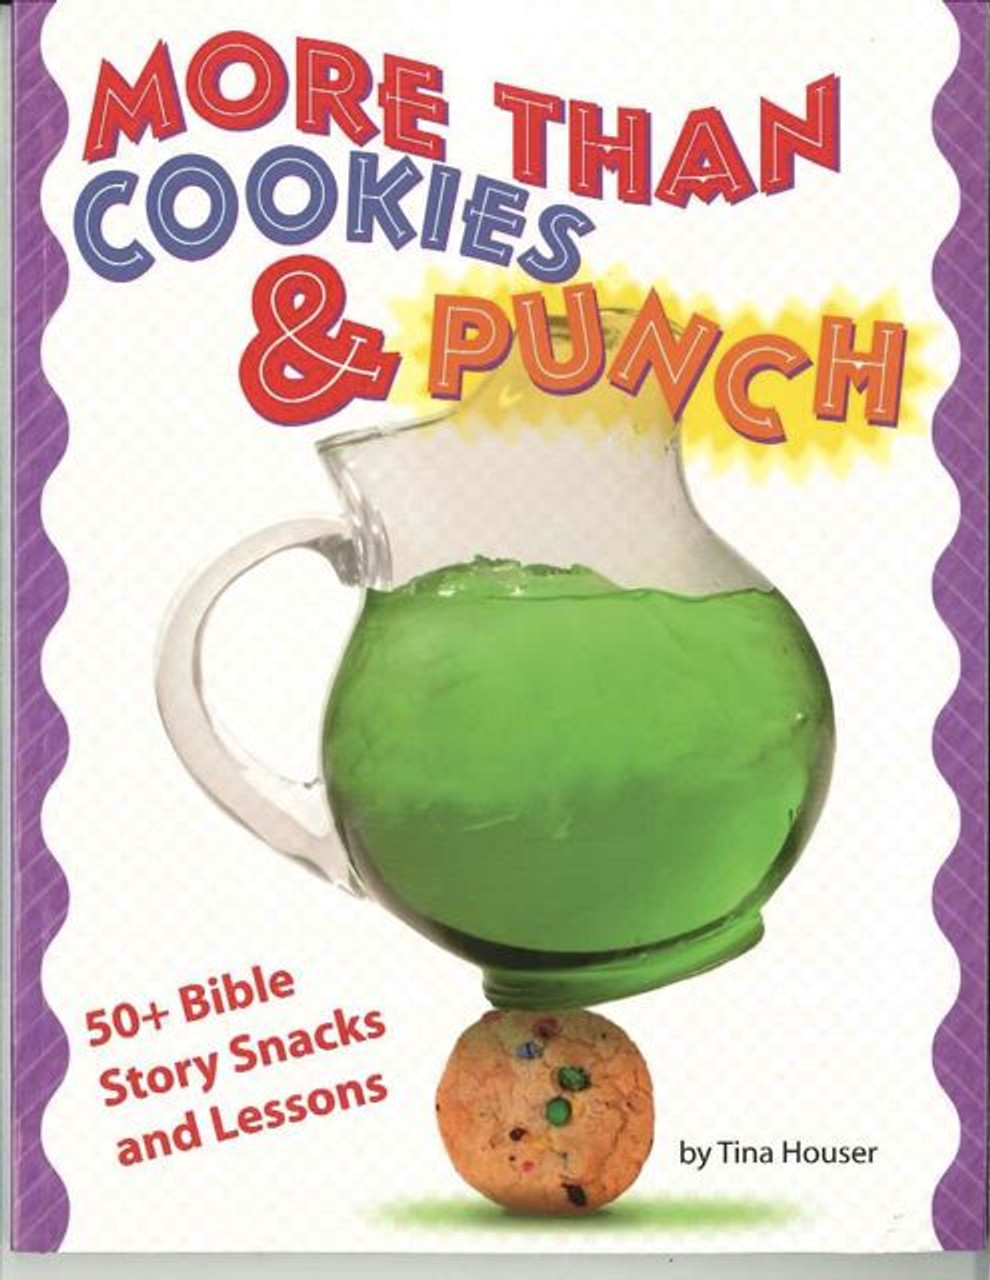 More than Cookies & Punch - 50 Bible Story Snacks and Lessons